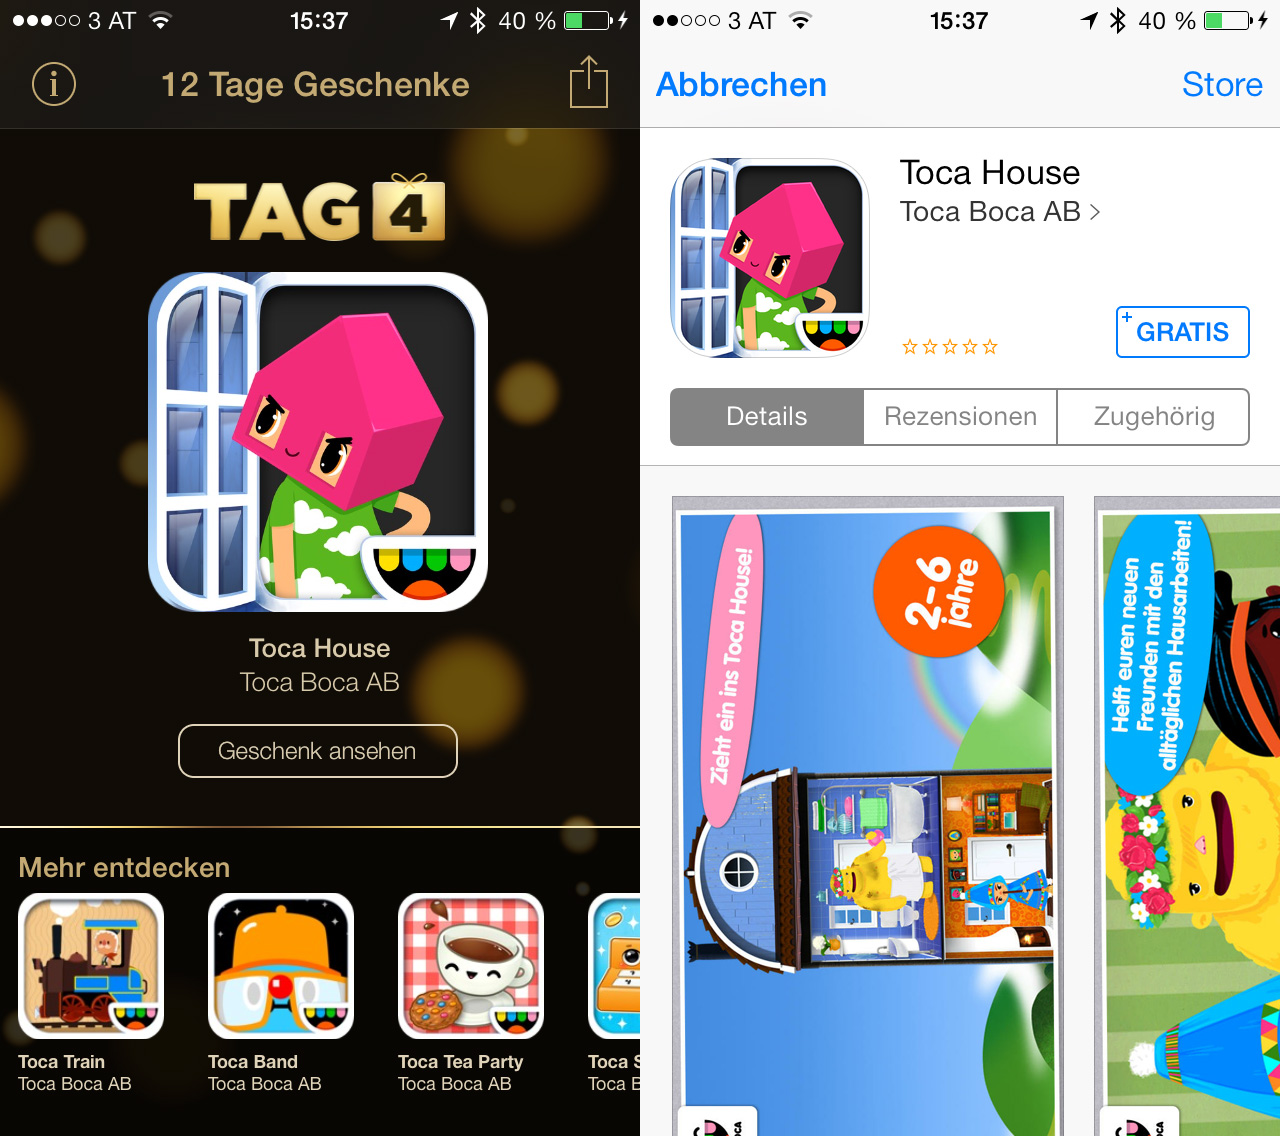 12 Tage Geschenke: Tag 04 - Toca House - Hack4Life - Immer aktuell